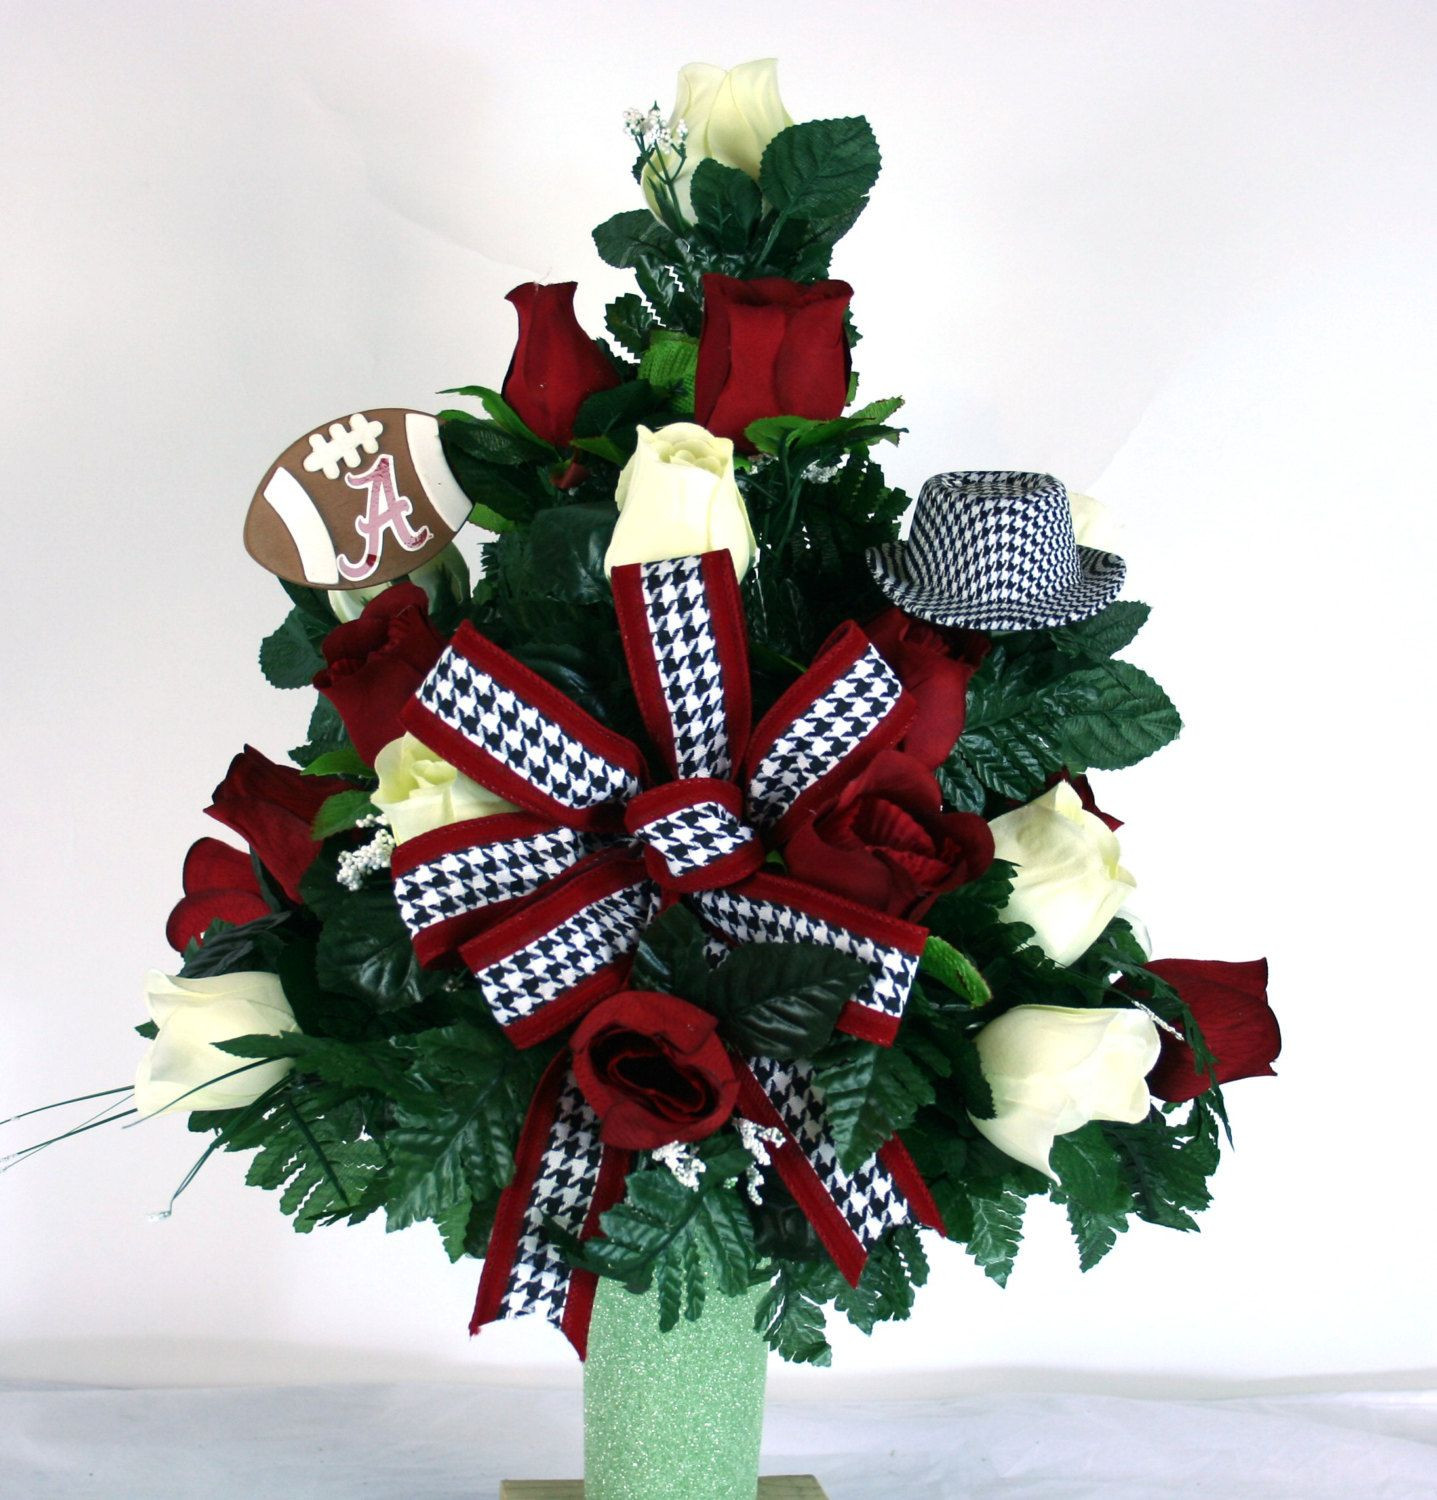 personalised grave vase of stay in the vase cemetery flowers with alabama crimson tide fan vase cemetery flower arrangement by crazyboutdeco on etsy